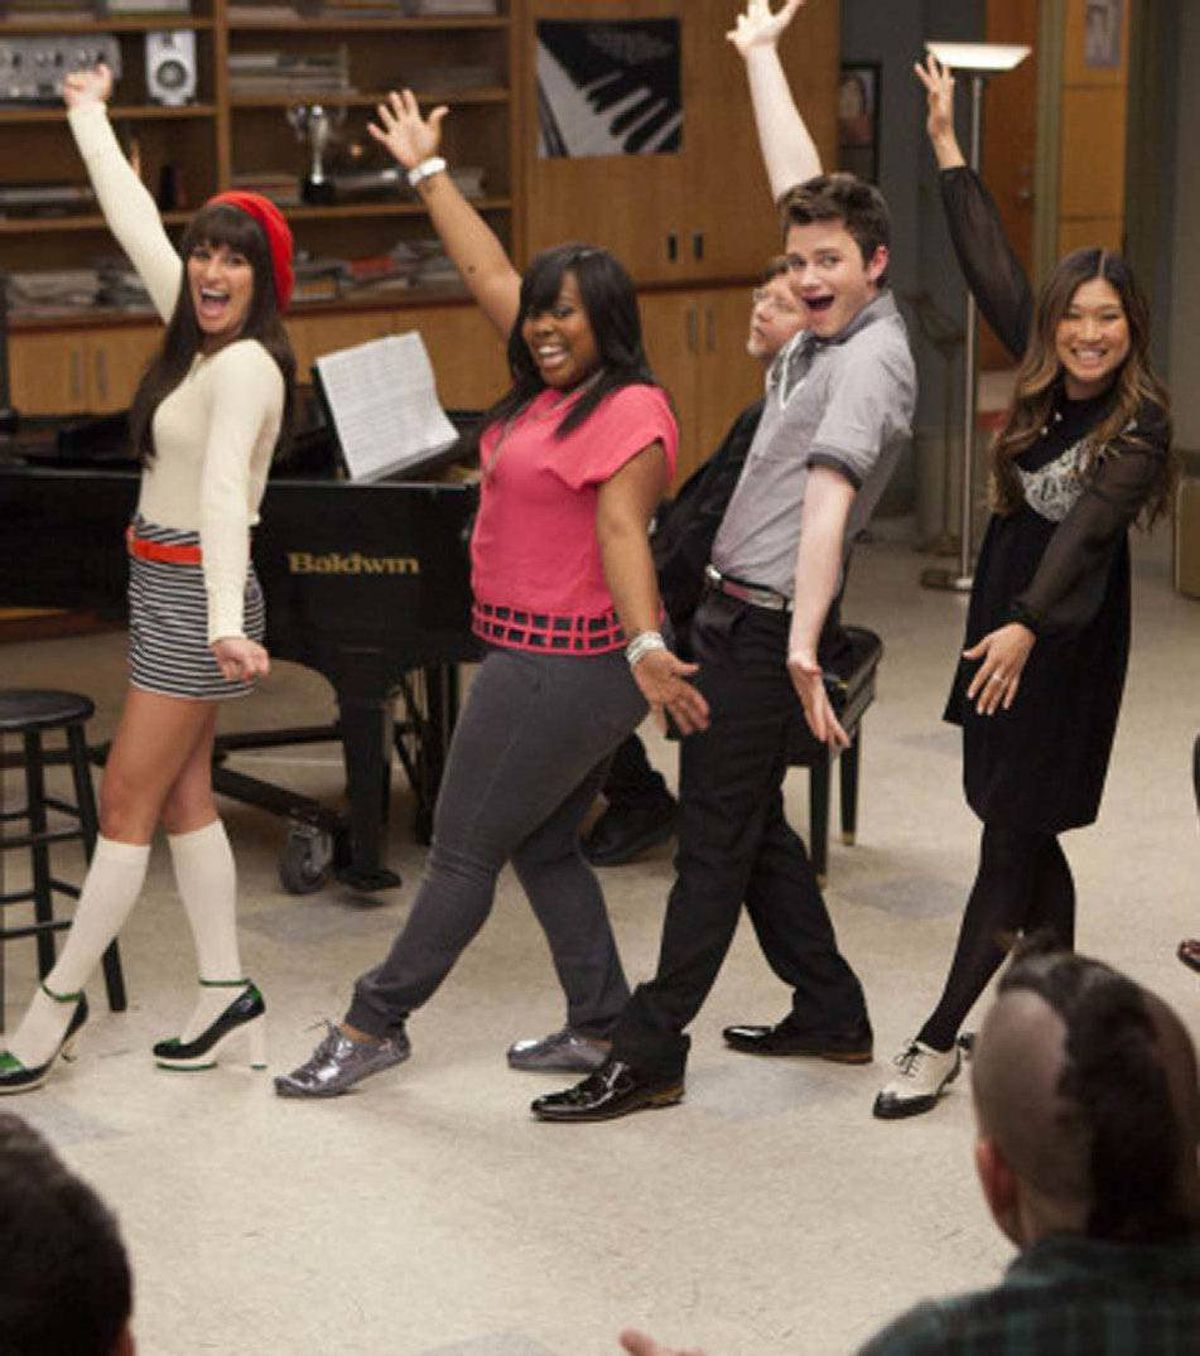 "DRAMA Glee Fox, Global, 9 p.m. ET/PT Well, the glee club had to finish high school eventually, right? Tonight's third-season finale brings graduation day at McKinley High and we should expect that several cast regulars won't be around when Glee returns for its fourth season next September. Amber Riley, who plays Mercedes, has already confirmed she's not coming back. Spunky regular Dianna Agron (Quinn) has also hinted at new opportunities. And it's a safe bet Canadian-born Cory Monteith, who plays Finn, won't be back, considering he recently turned 30. In a recent interview with E! Online, series regular Lea Michele, who plays Rachel, confirmed the show will follow several characters as they enroll at the fictional New York Academy of Dramatic Arts next season (so long, Kurt) and tonight's finale will feature a ""big cliffhanger"" for her character and sweetheart Finn."